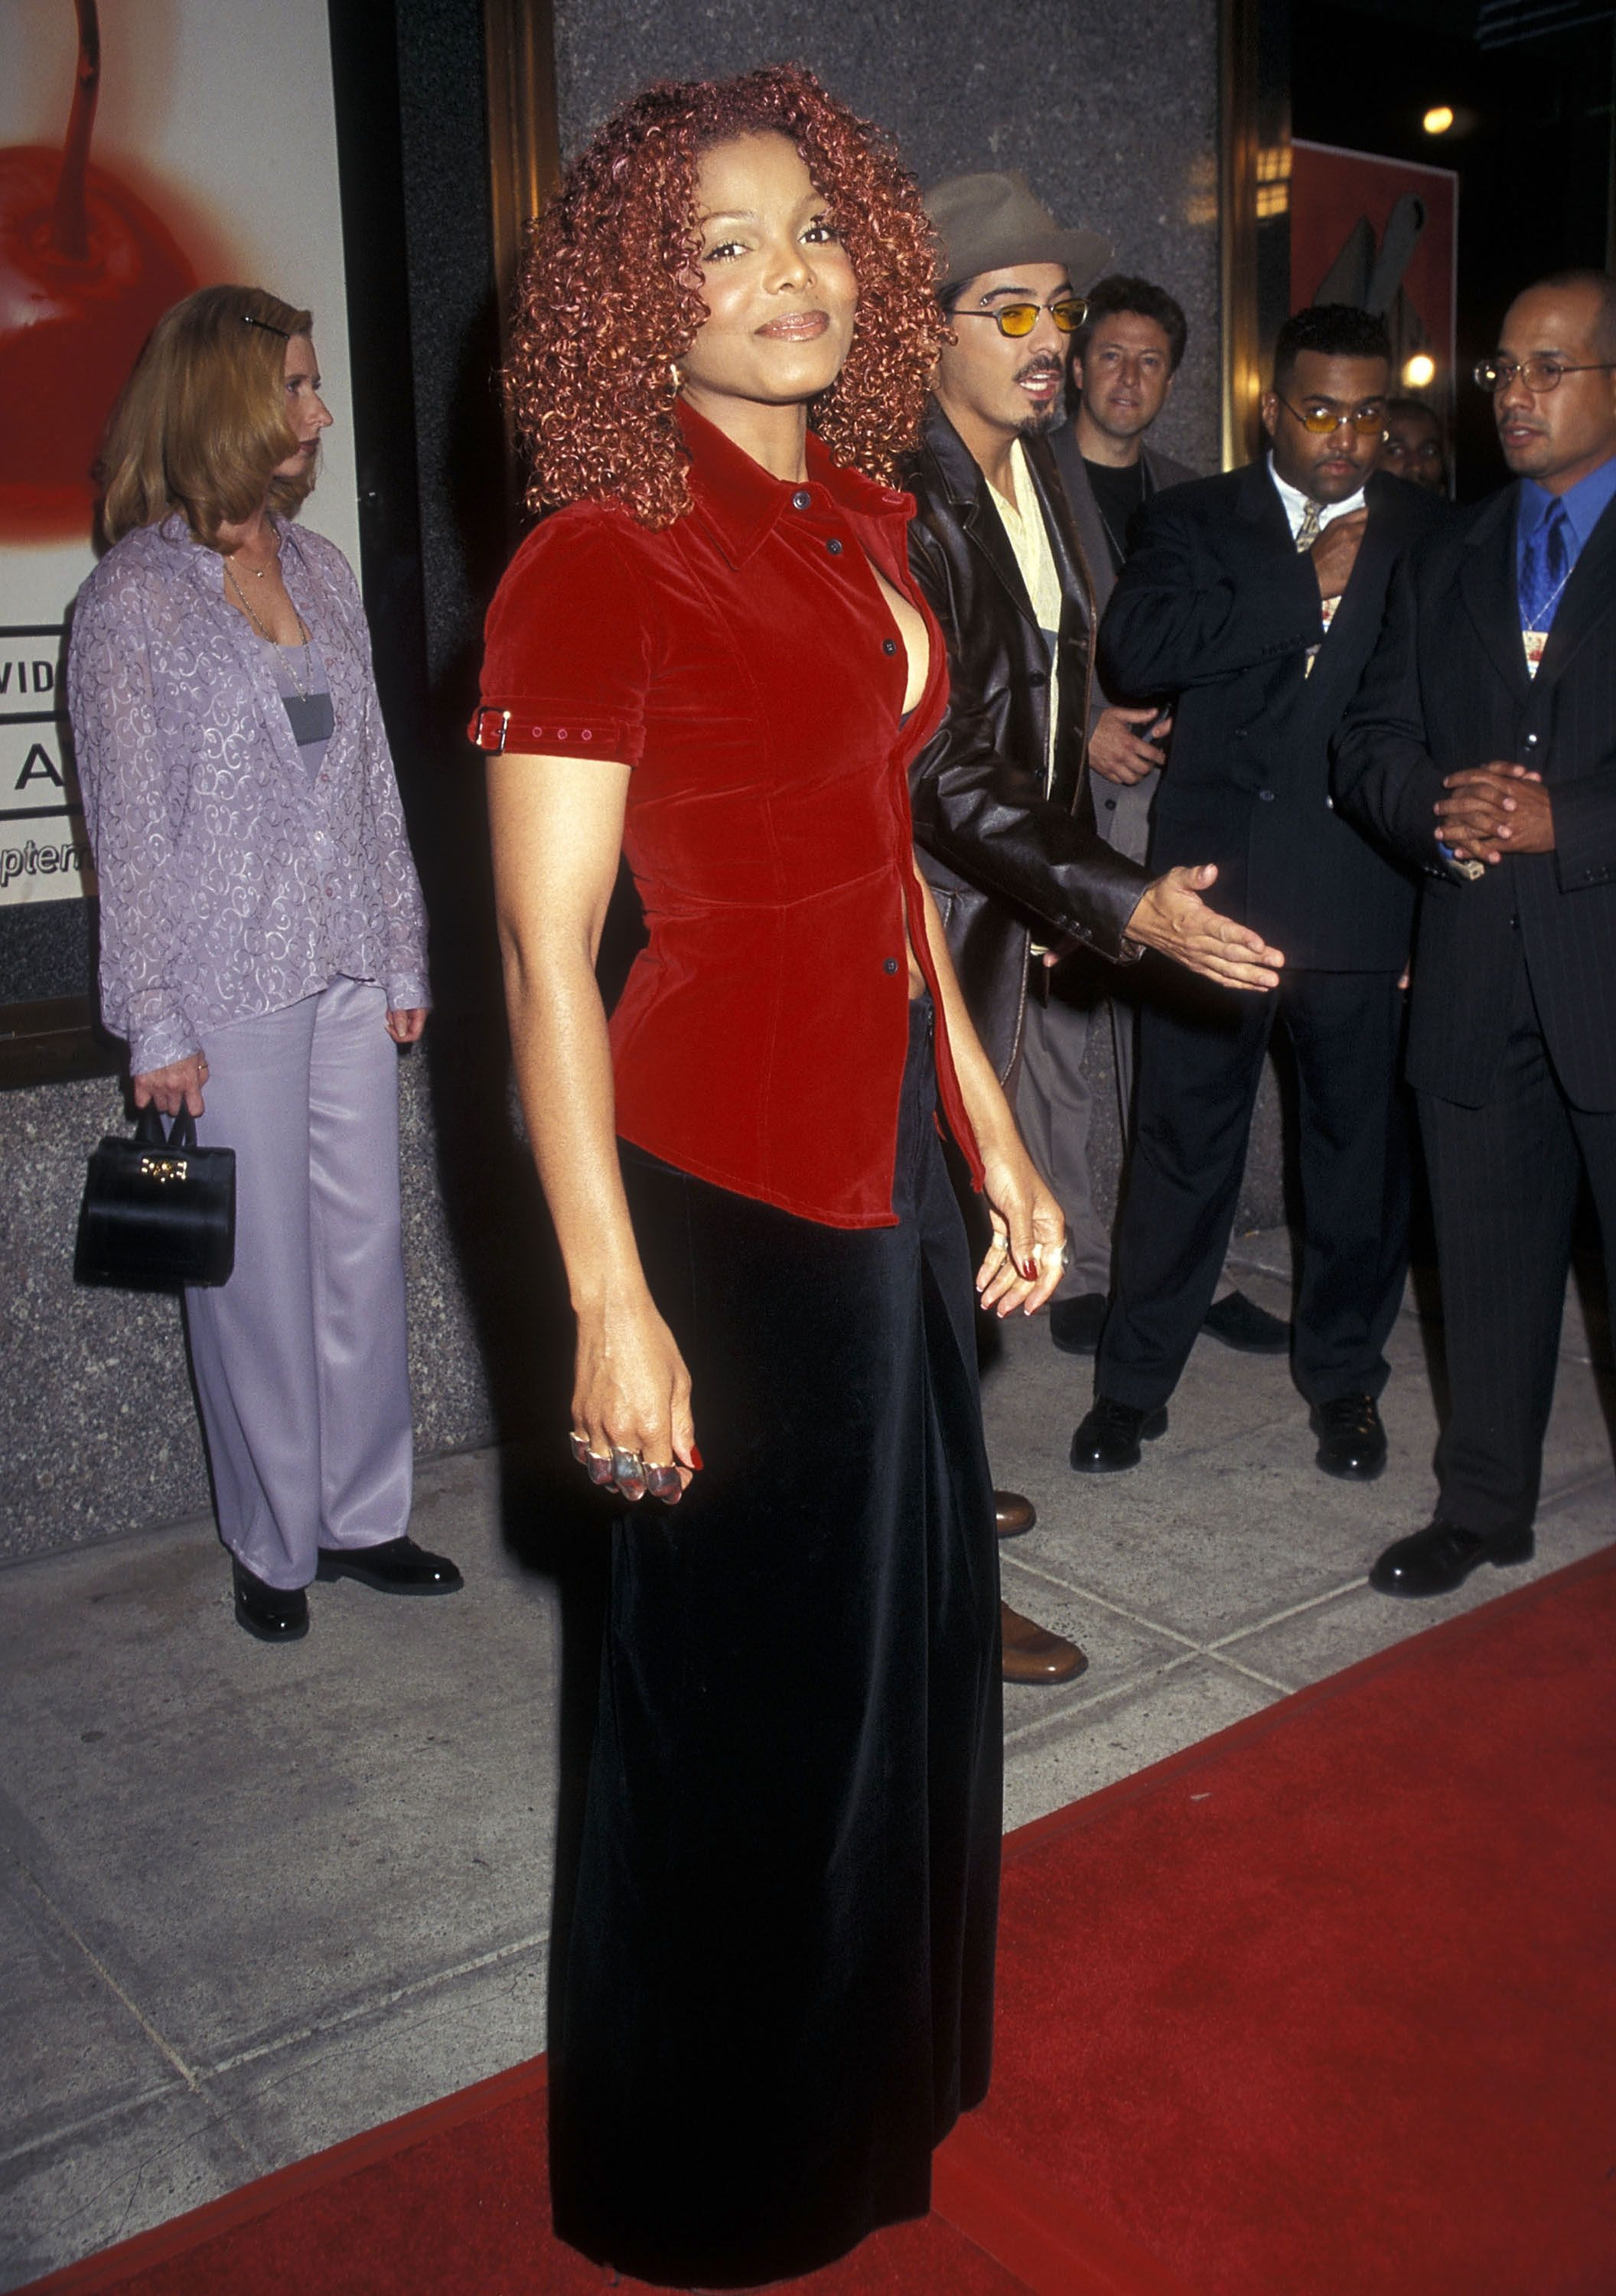 Photos Janet Jackson At The Mtv Vma S Music Video Awards 1997 In 2020 Janet Jackson Mtv Jackson Music